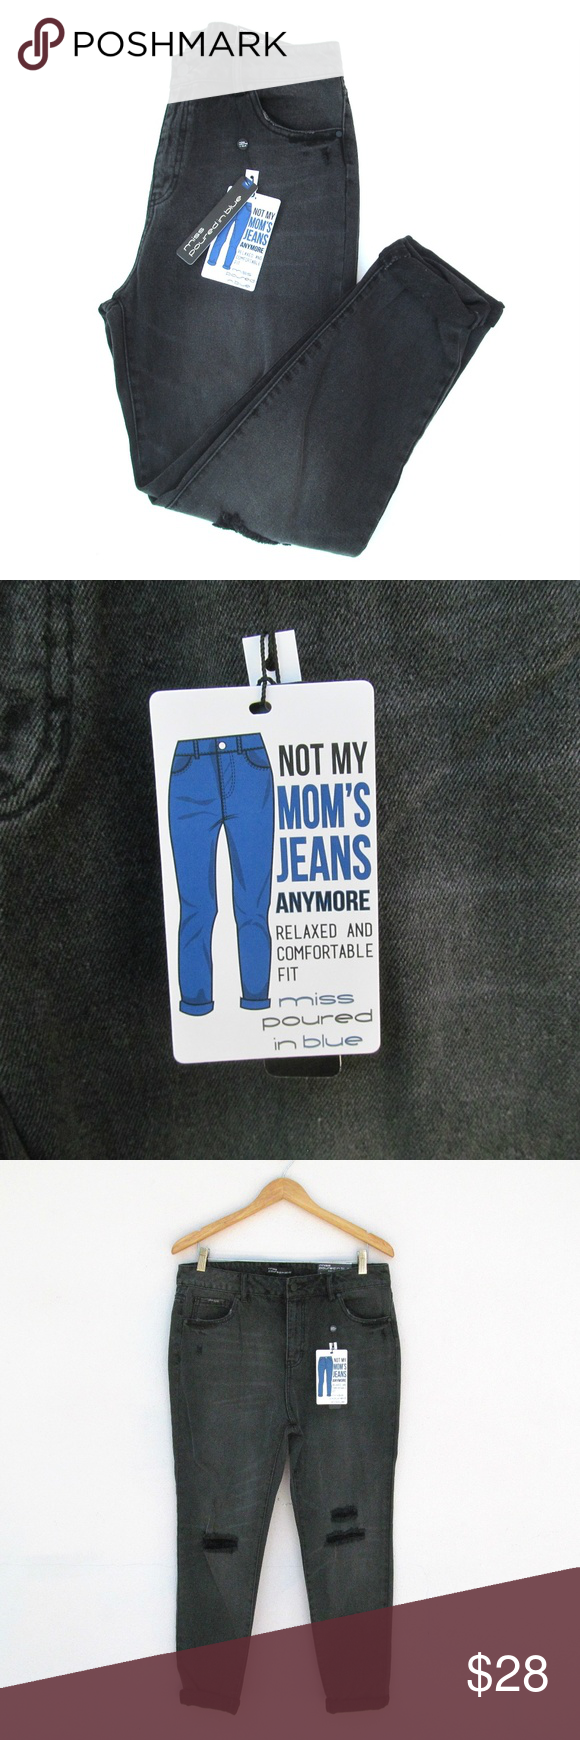 Distressed Ankle Denim Jeans Size 12 Miss Poured In Blue Distressed Black Stone Wash Ankle Jean Size 12 Brand New With Tags Miss Poured In Blue J Size 12 Jeans